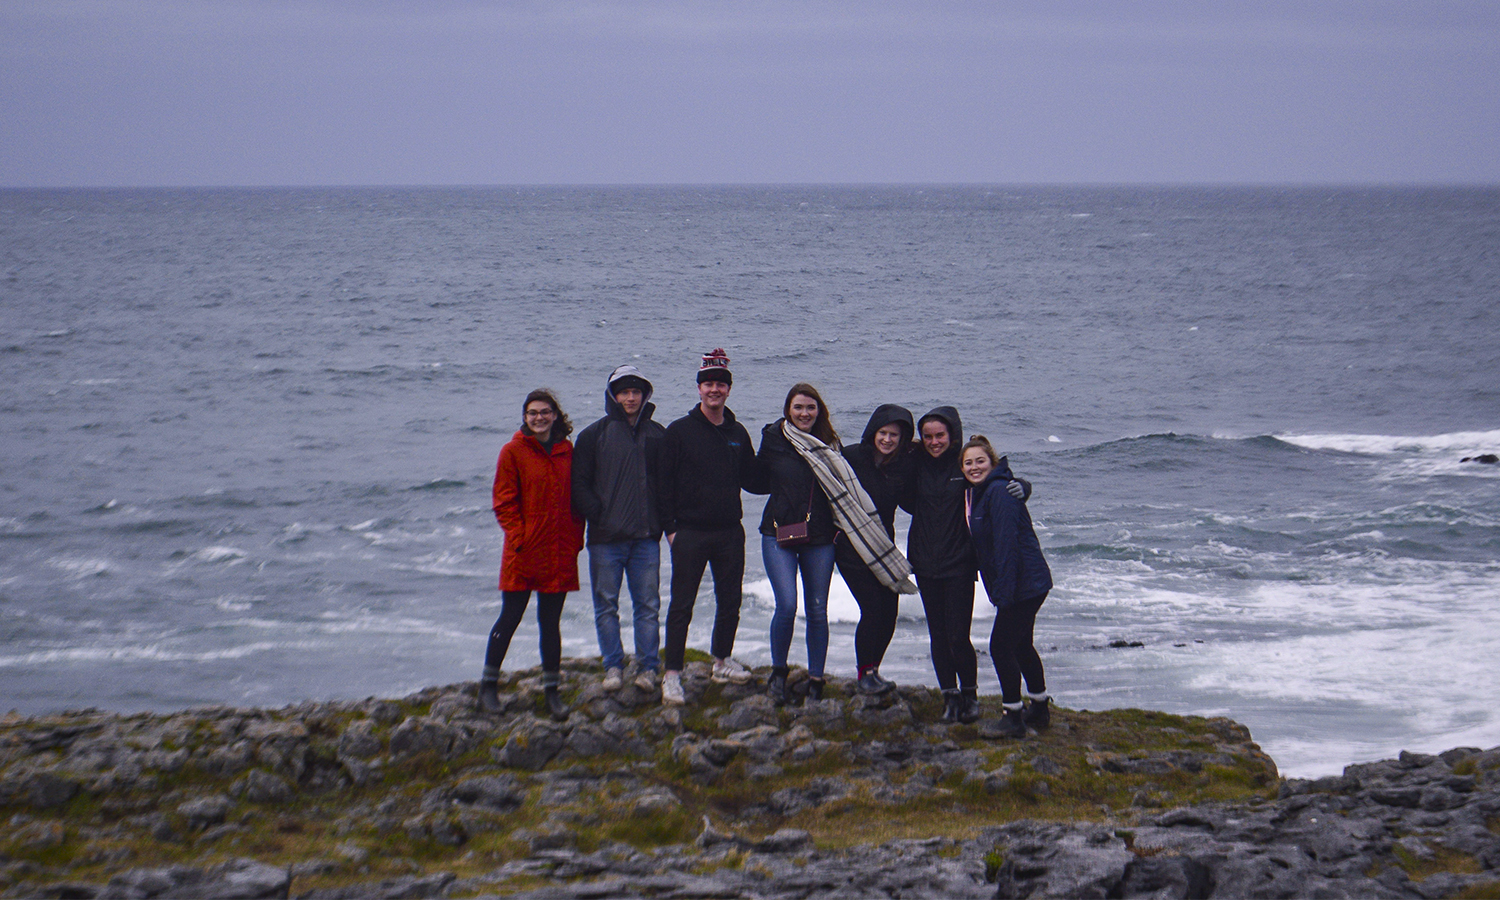 Edie Falk '21, Ryan Carey '20, Dylan McDonald '20, Lindsay Carr '20, Genevieve Carpenter '20, Eileen Rath '20, and Bennett Tierney '20 stand at the Burren National Park on the West Coast of Ireland while abroad in Galway.